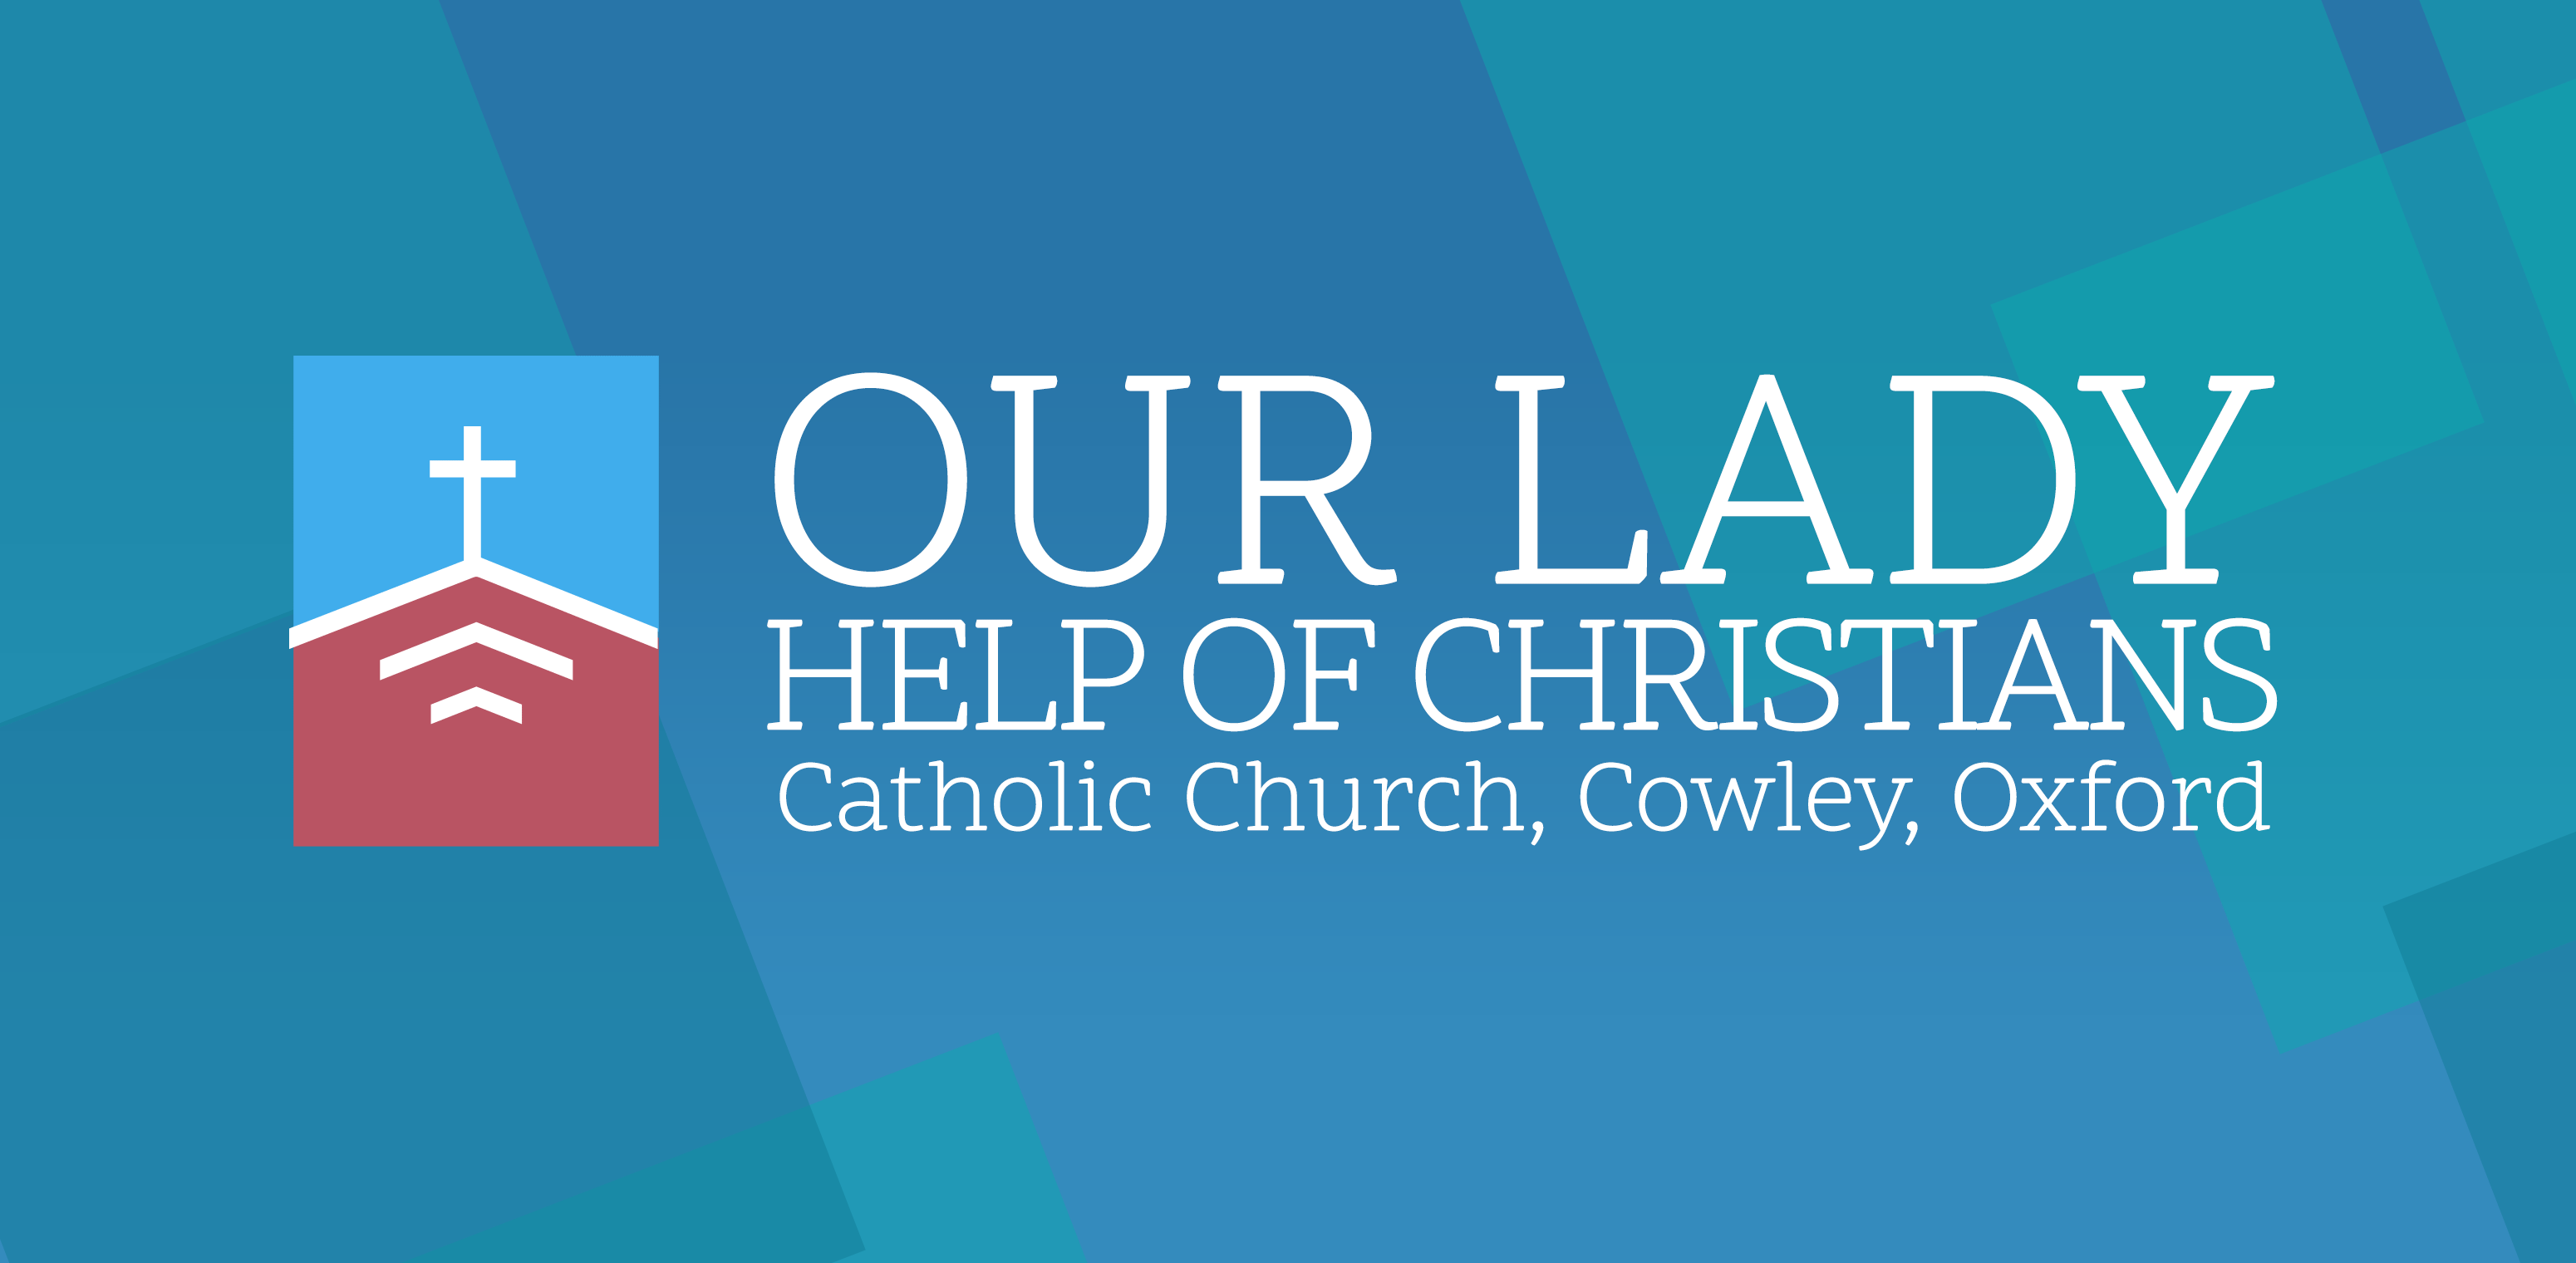 Brand Design | Our Lady Help of Christians, Brand Design